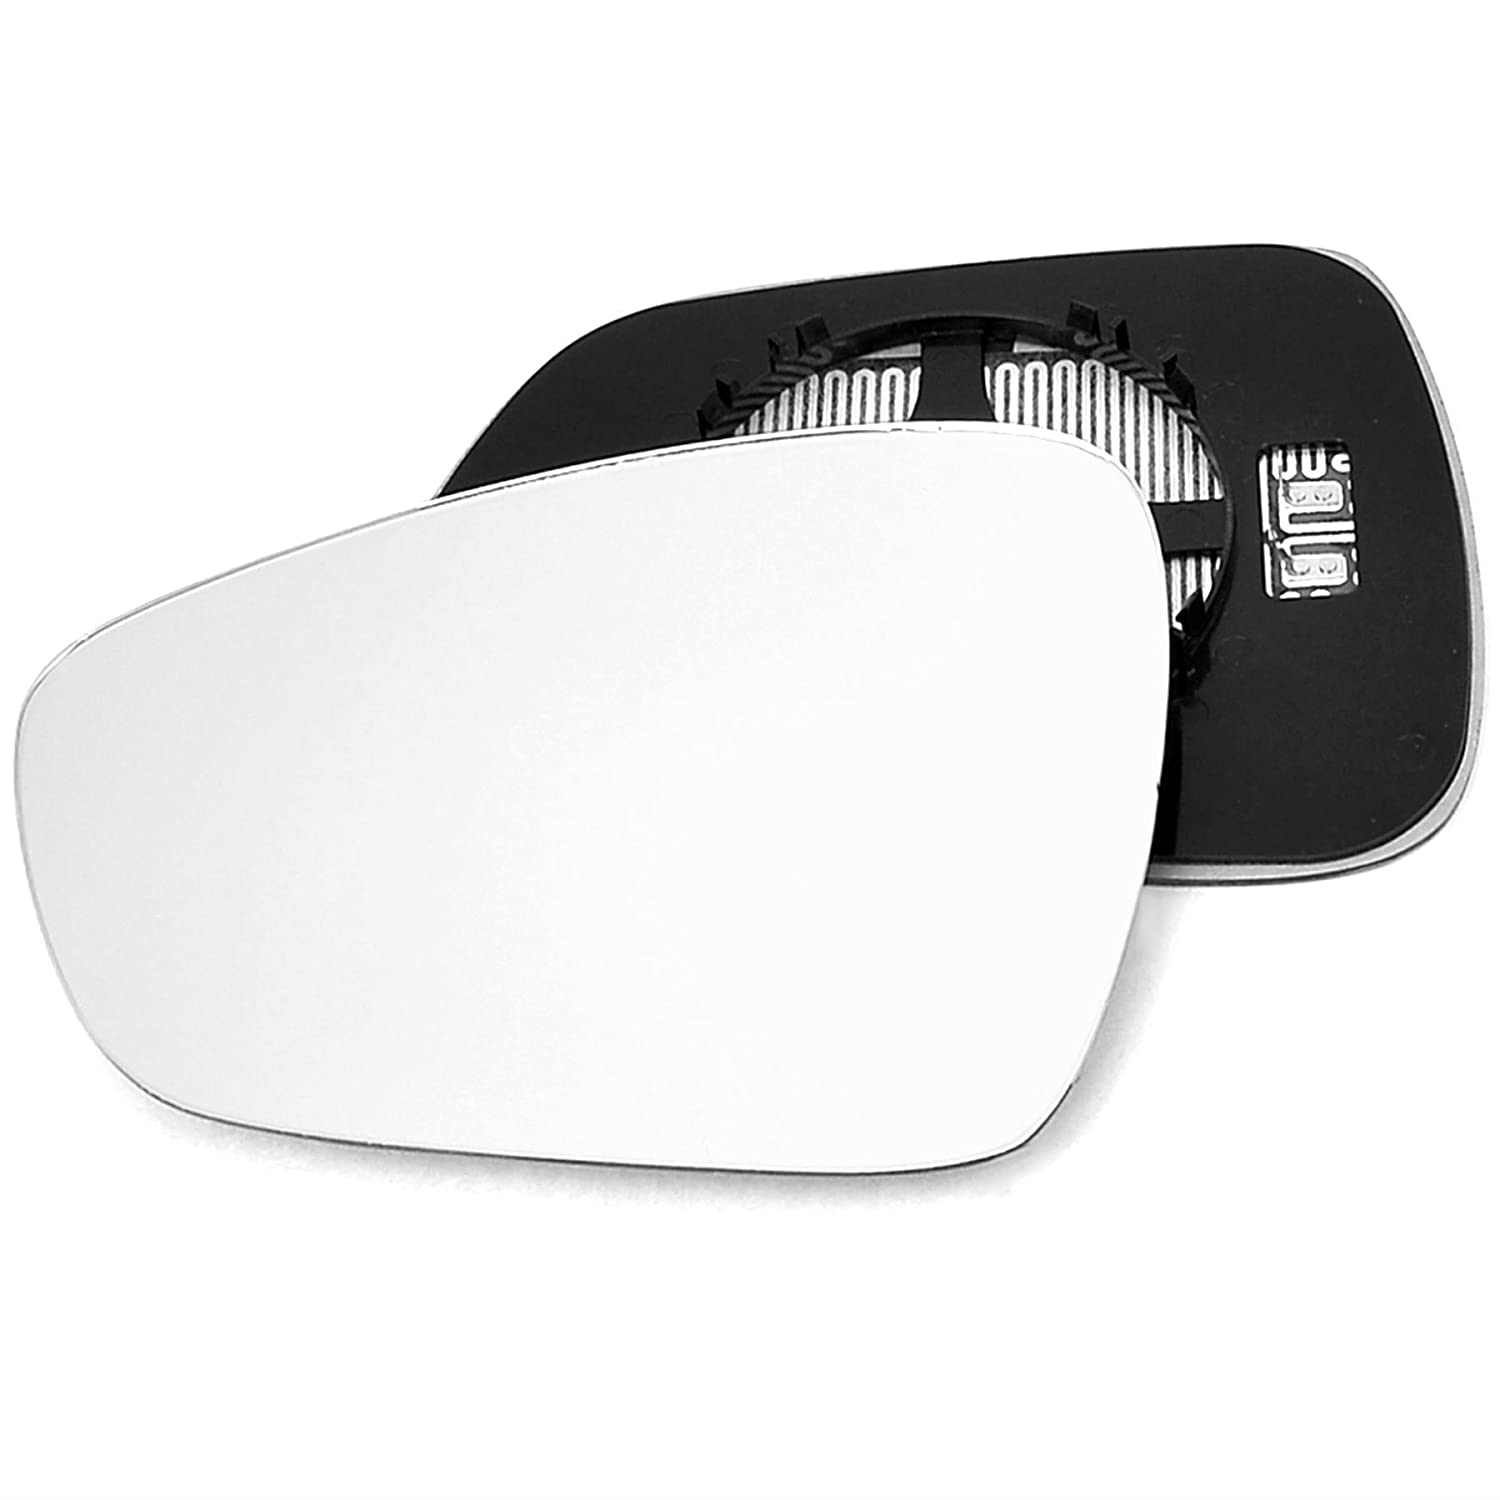 For Citroen C3 2009-2016 Passenger left hand side wing door mirror convex glass heated with backing plate Sylgab